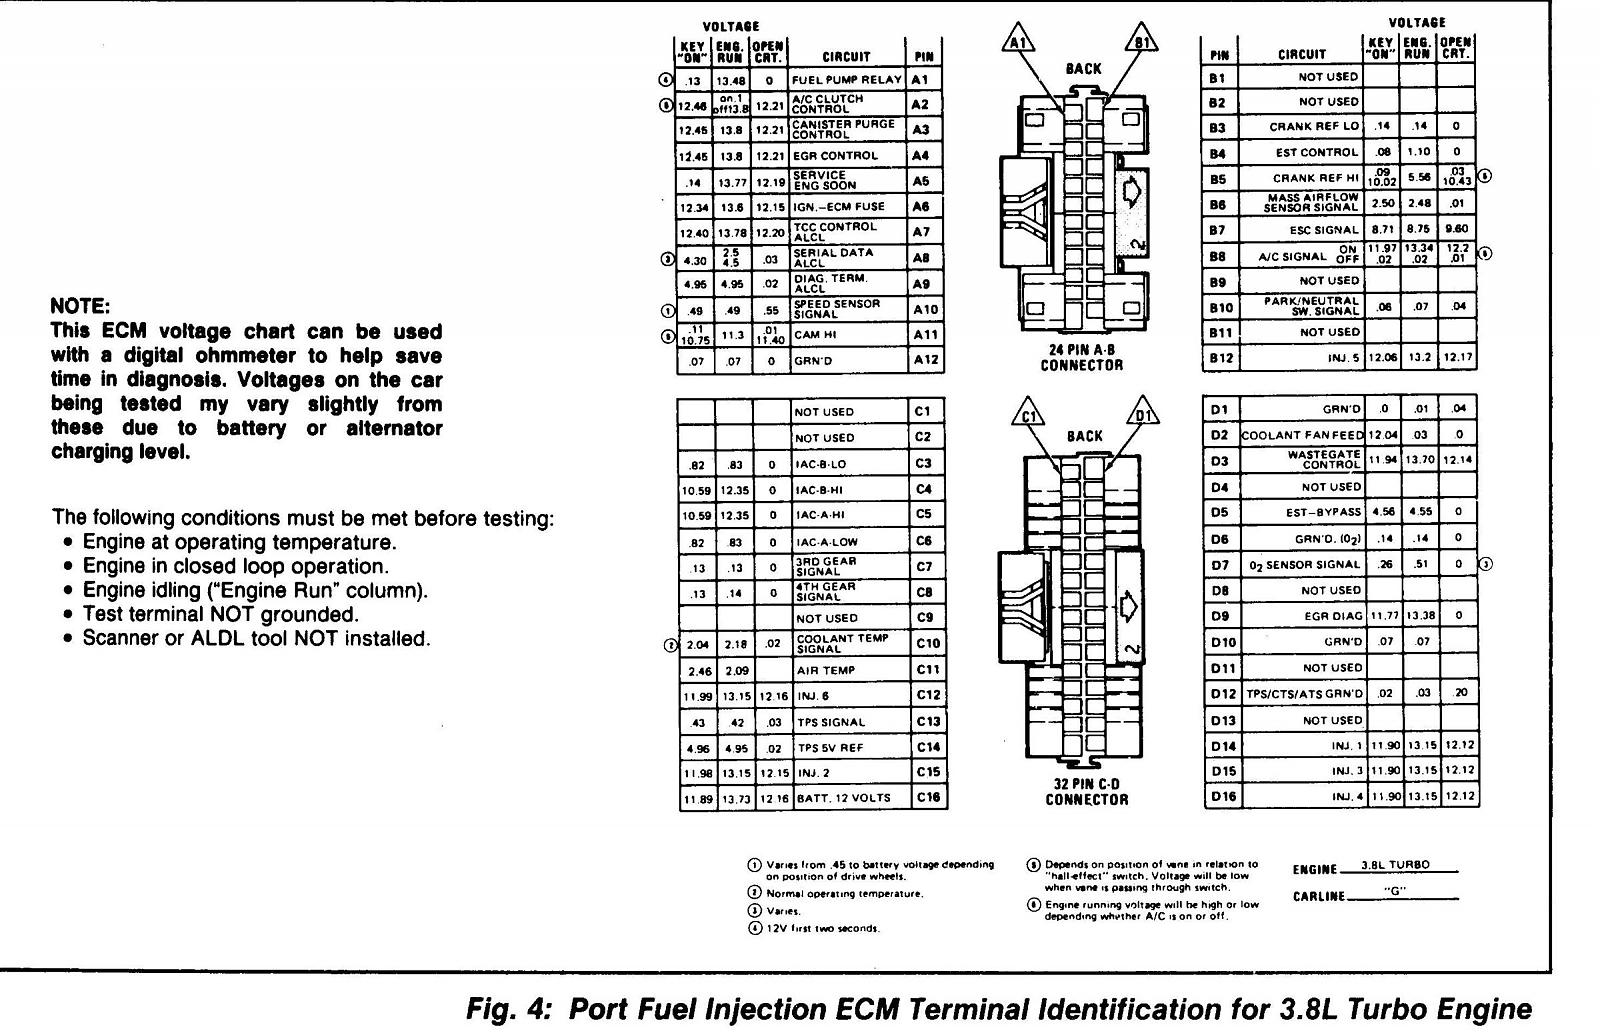 2000 buick regal fuel pump wiring diagram images buick regal 95 buick regal wiring diagram get image